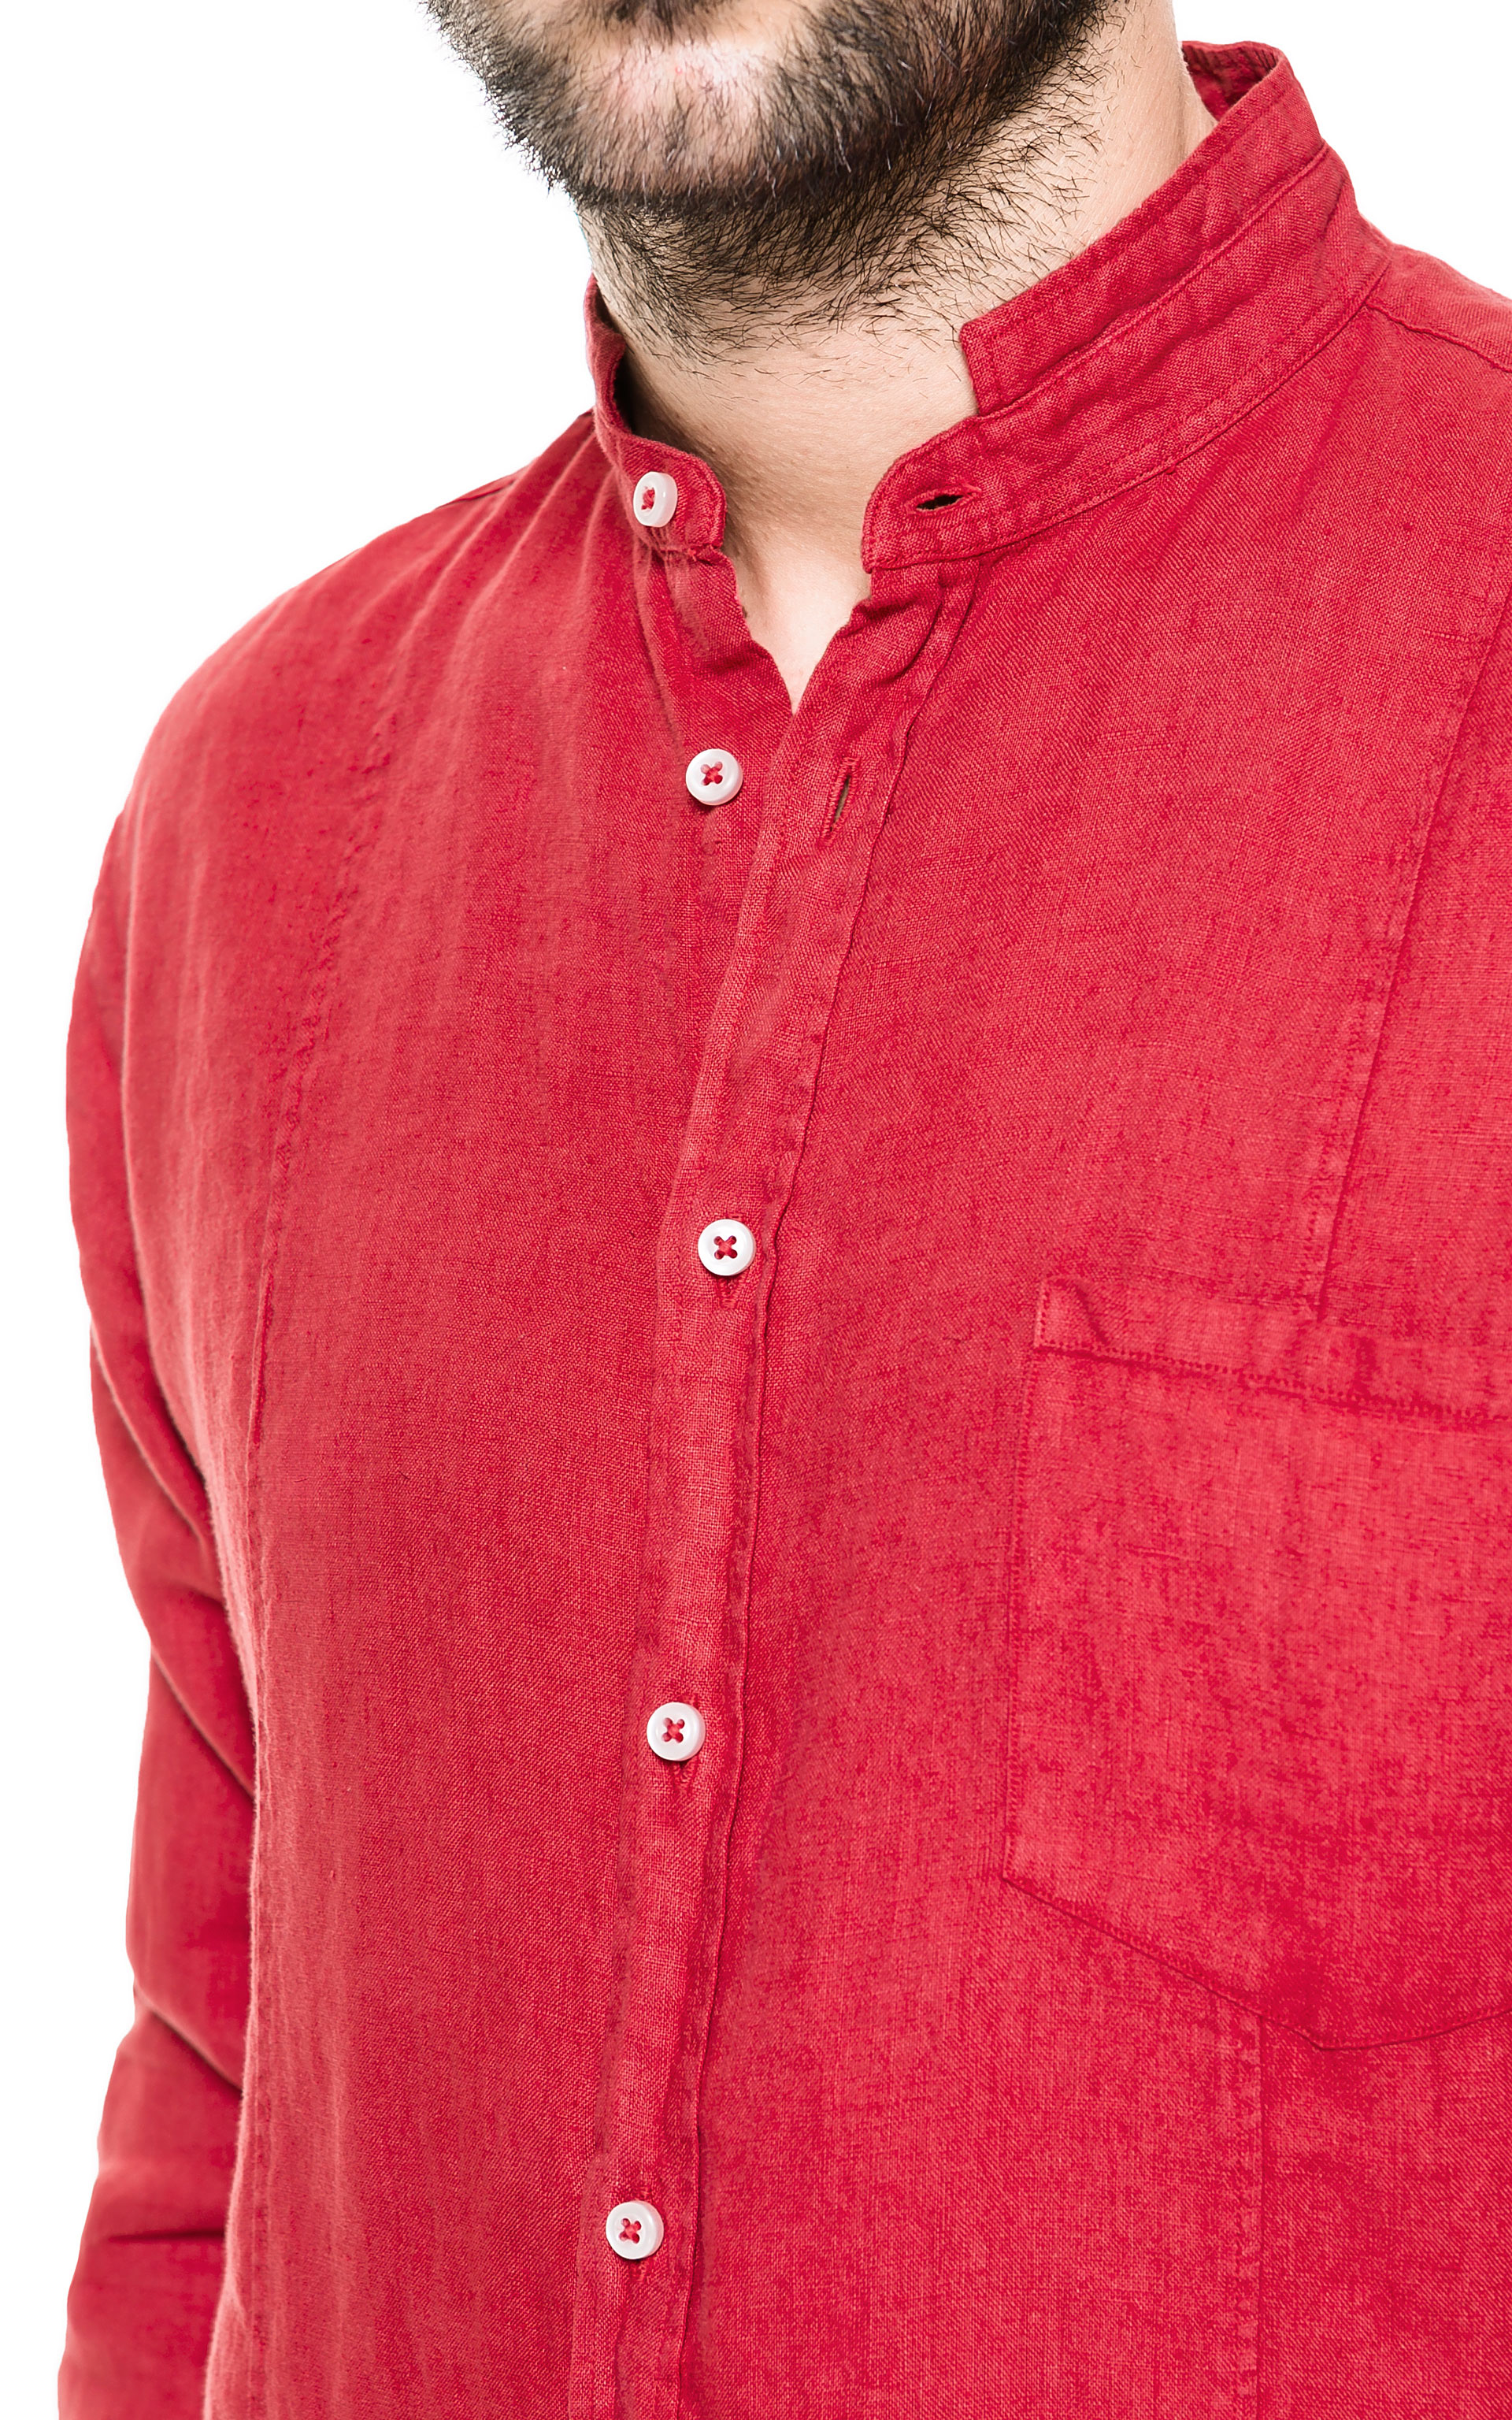 zara linen shirt with mao collar in red for men lyst